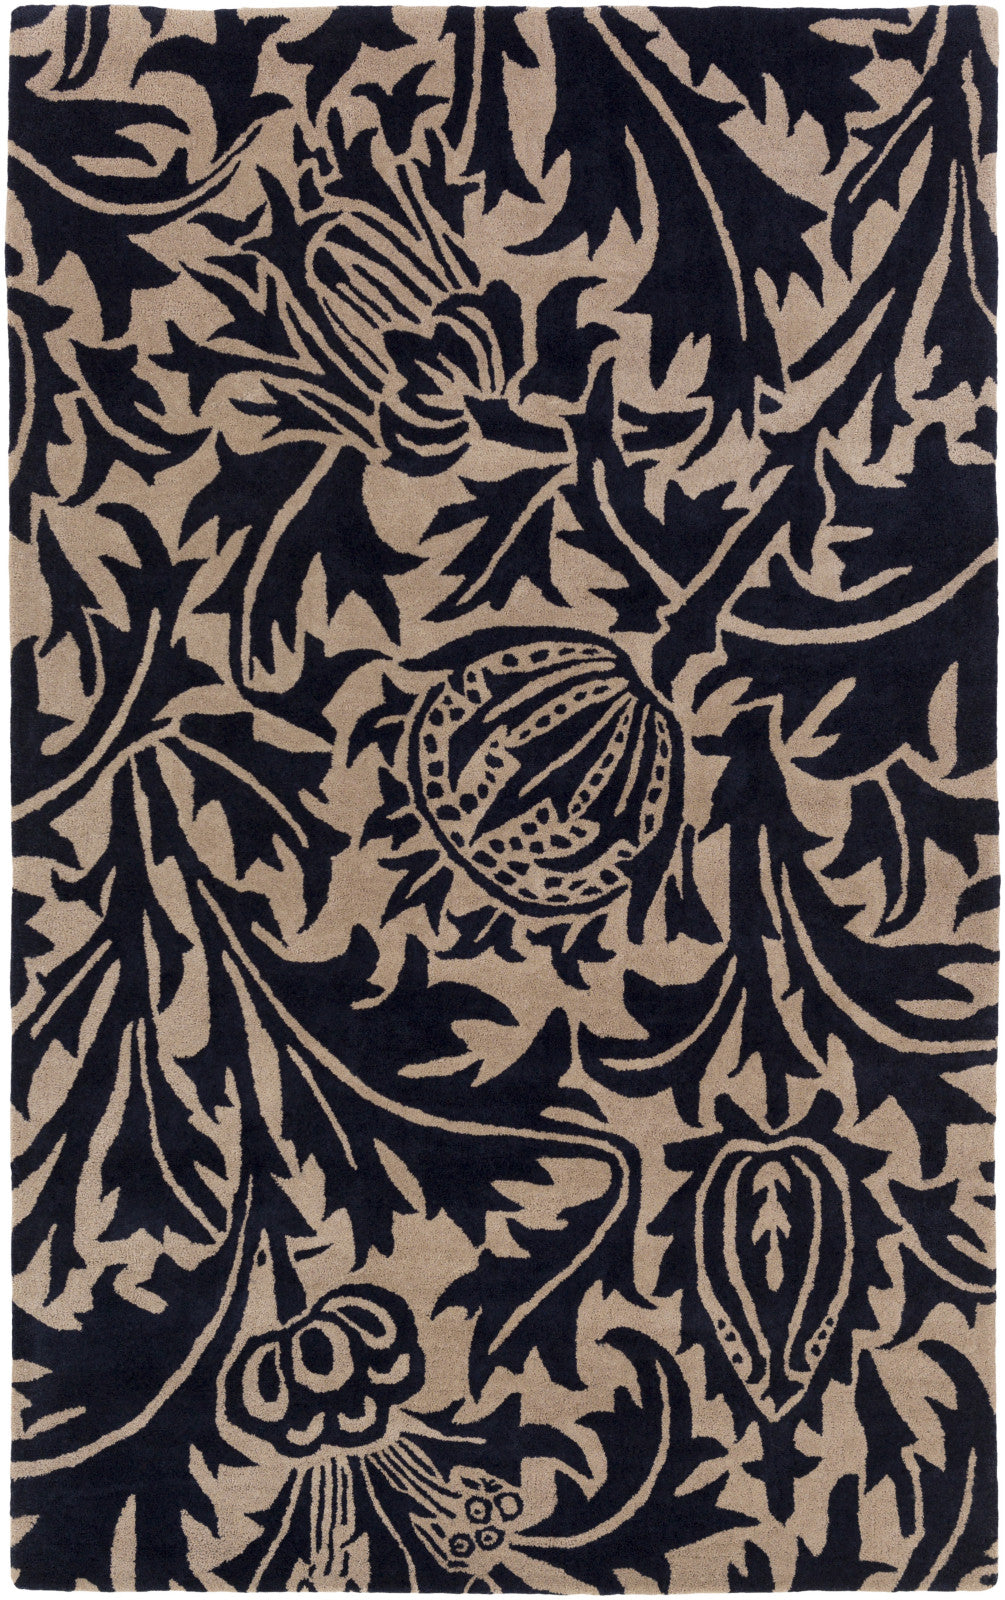 Surya WLM-3008 Area Rug by William Morris